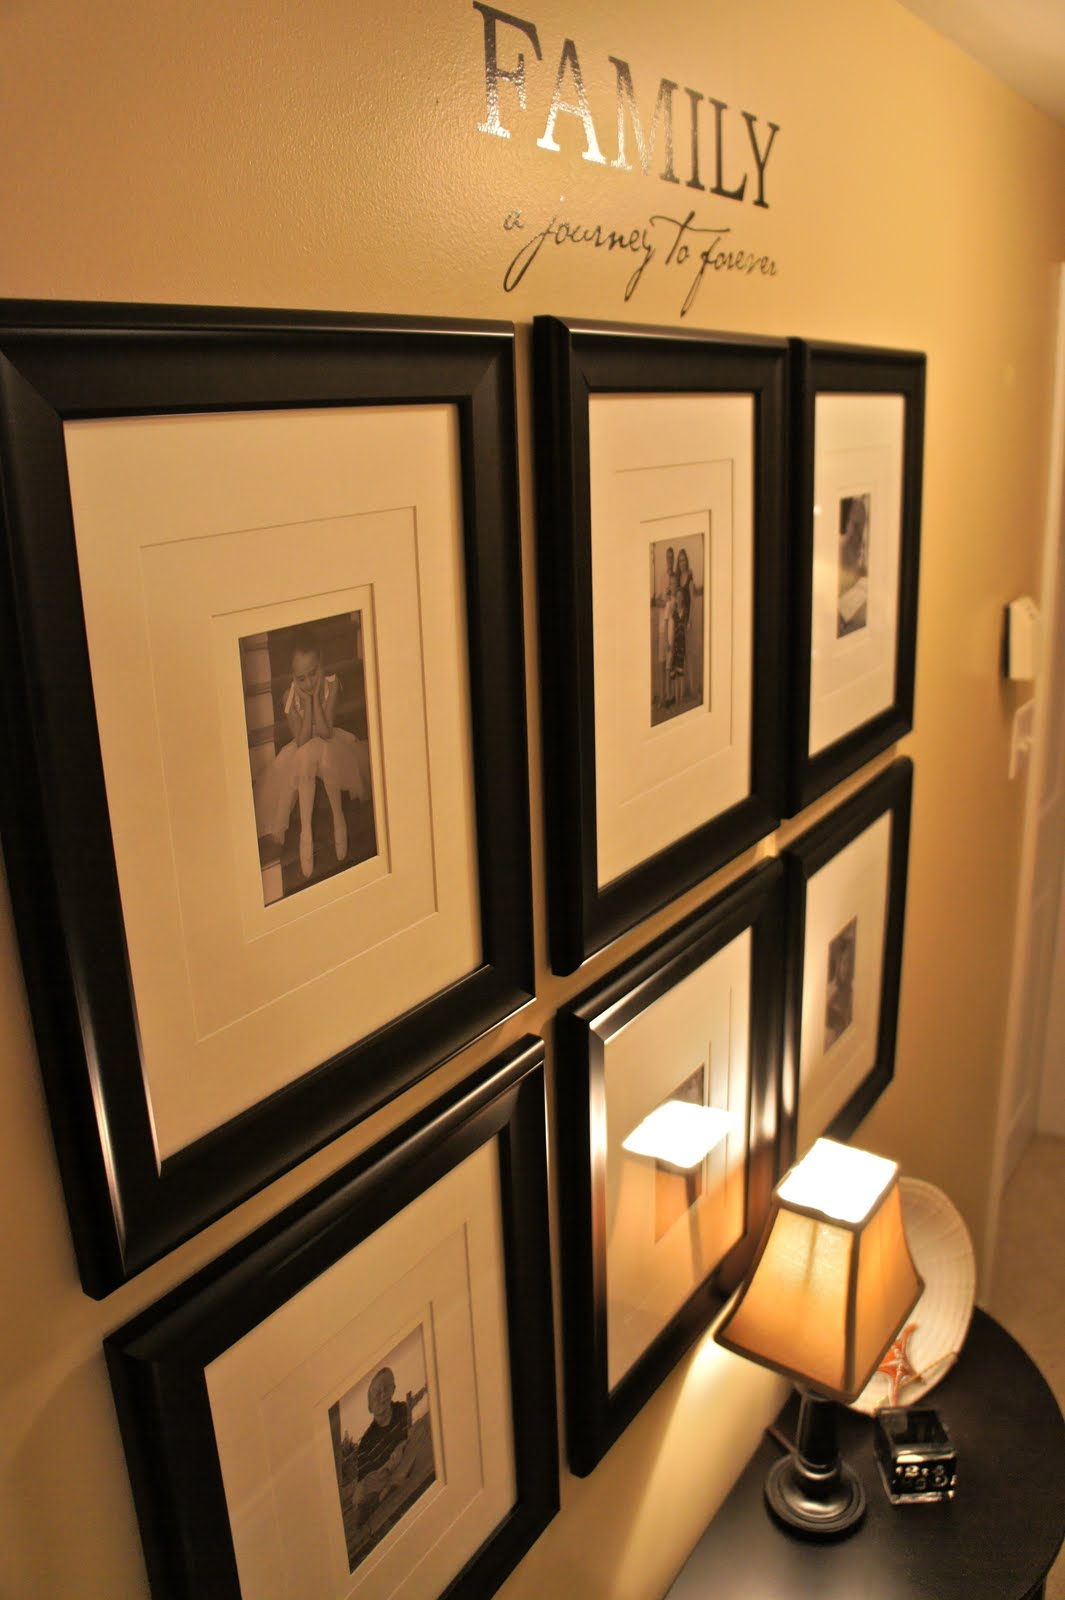 a simple wall grouping is created using inexpensive black frames 15 for 2 from costco with white matting a few favourite family photos printed in black